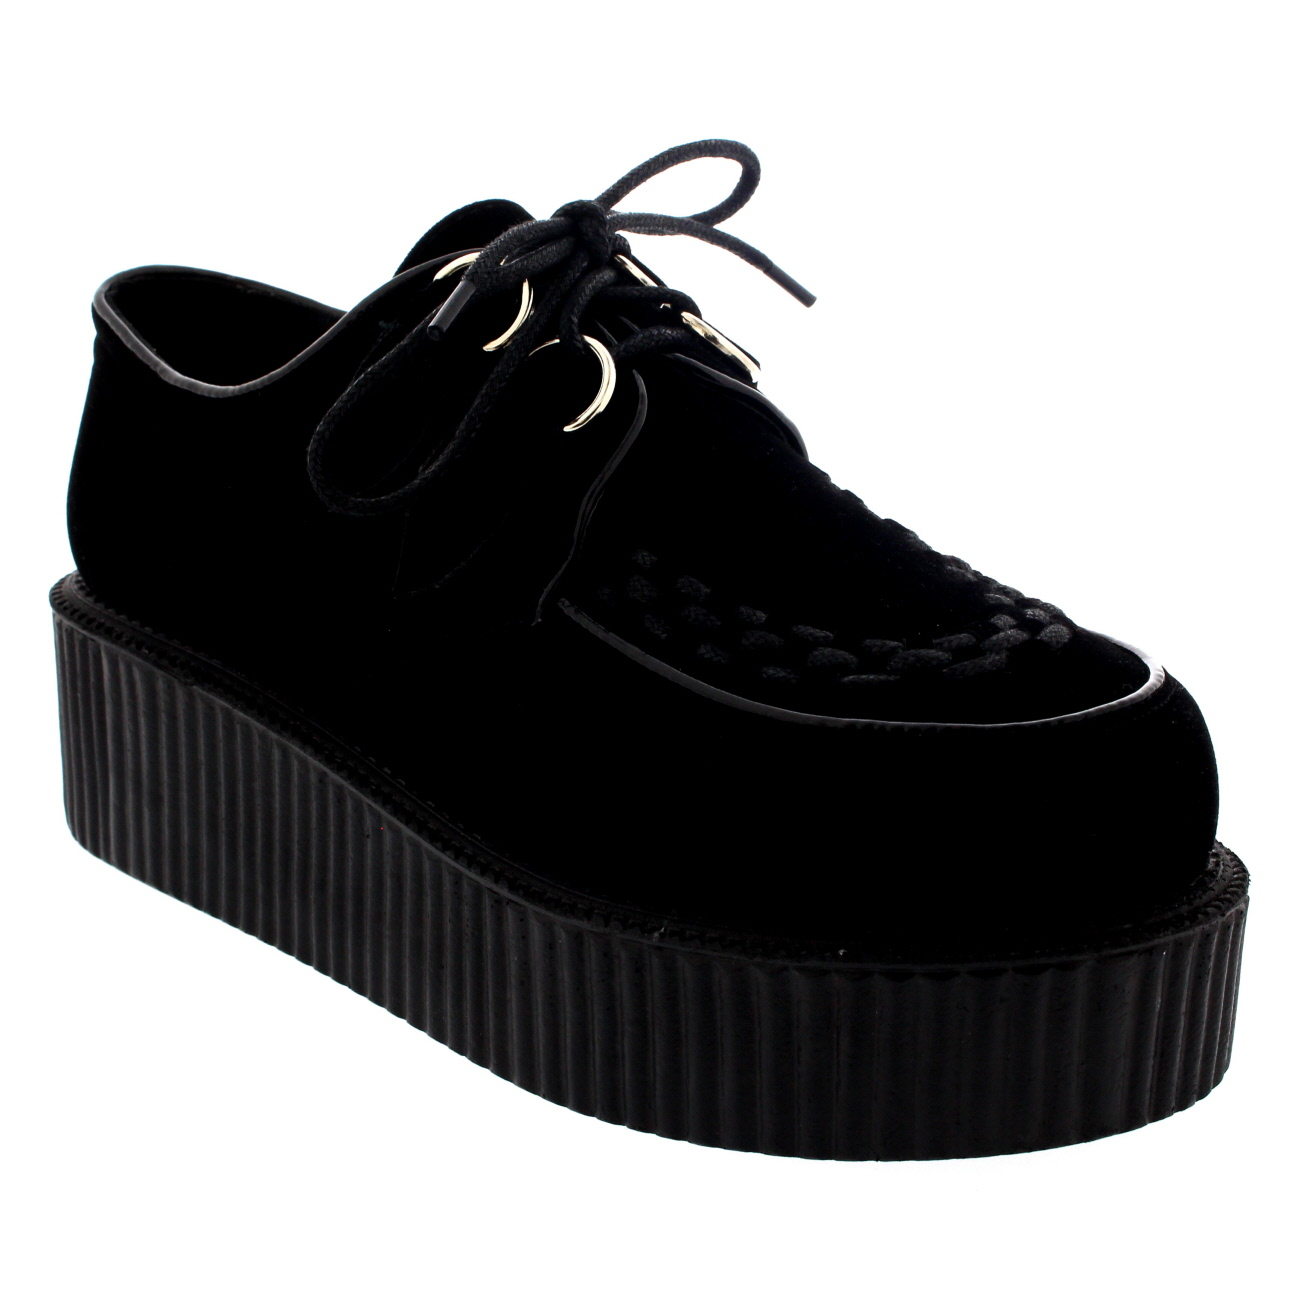 Womens Double Platform Retro Punk Festival Rock Brothel Creepers Shoes UK 3-9